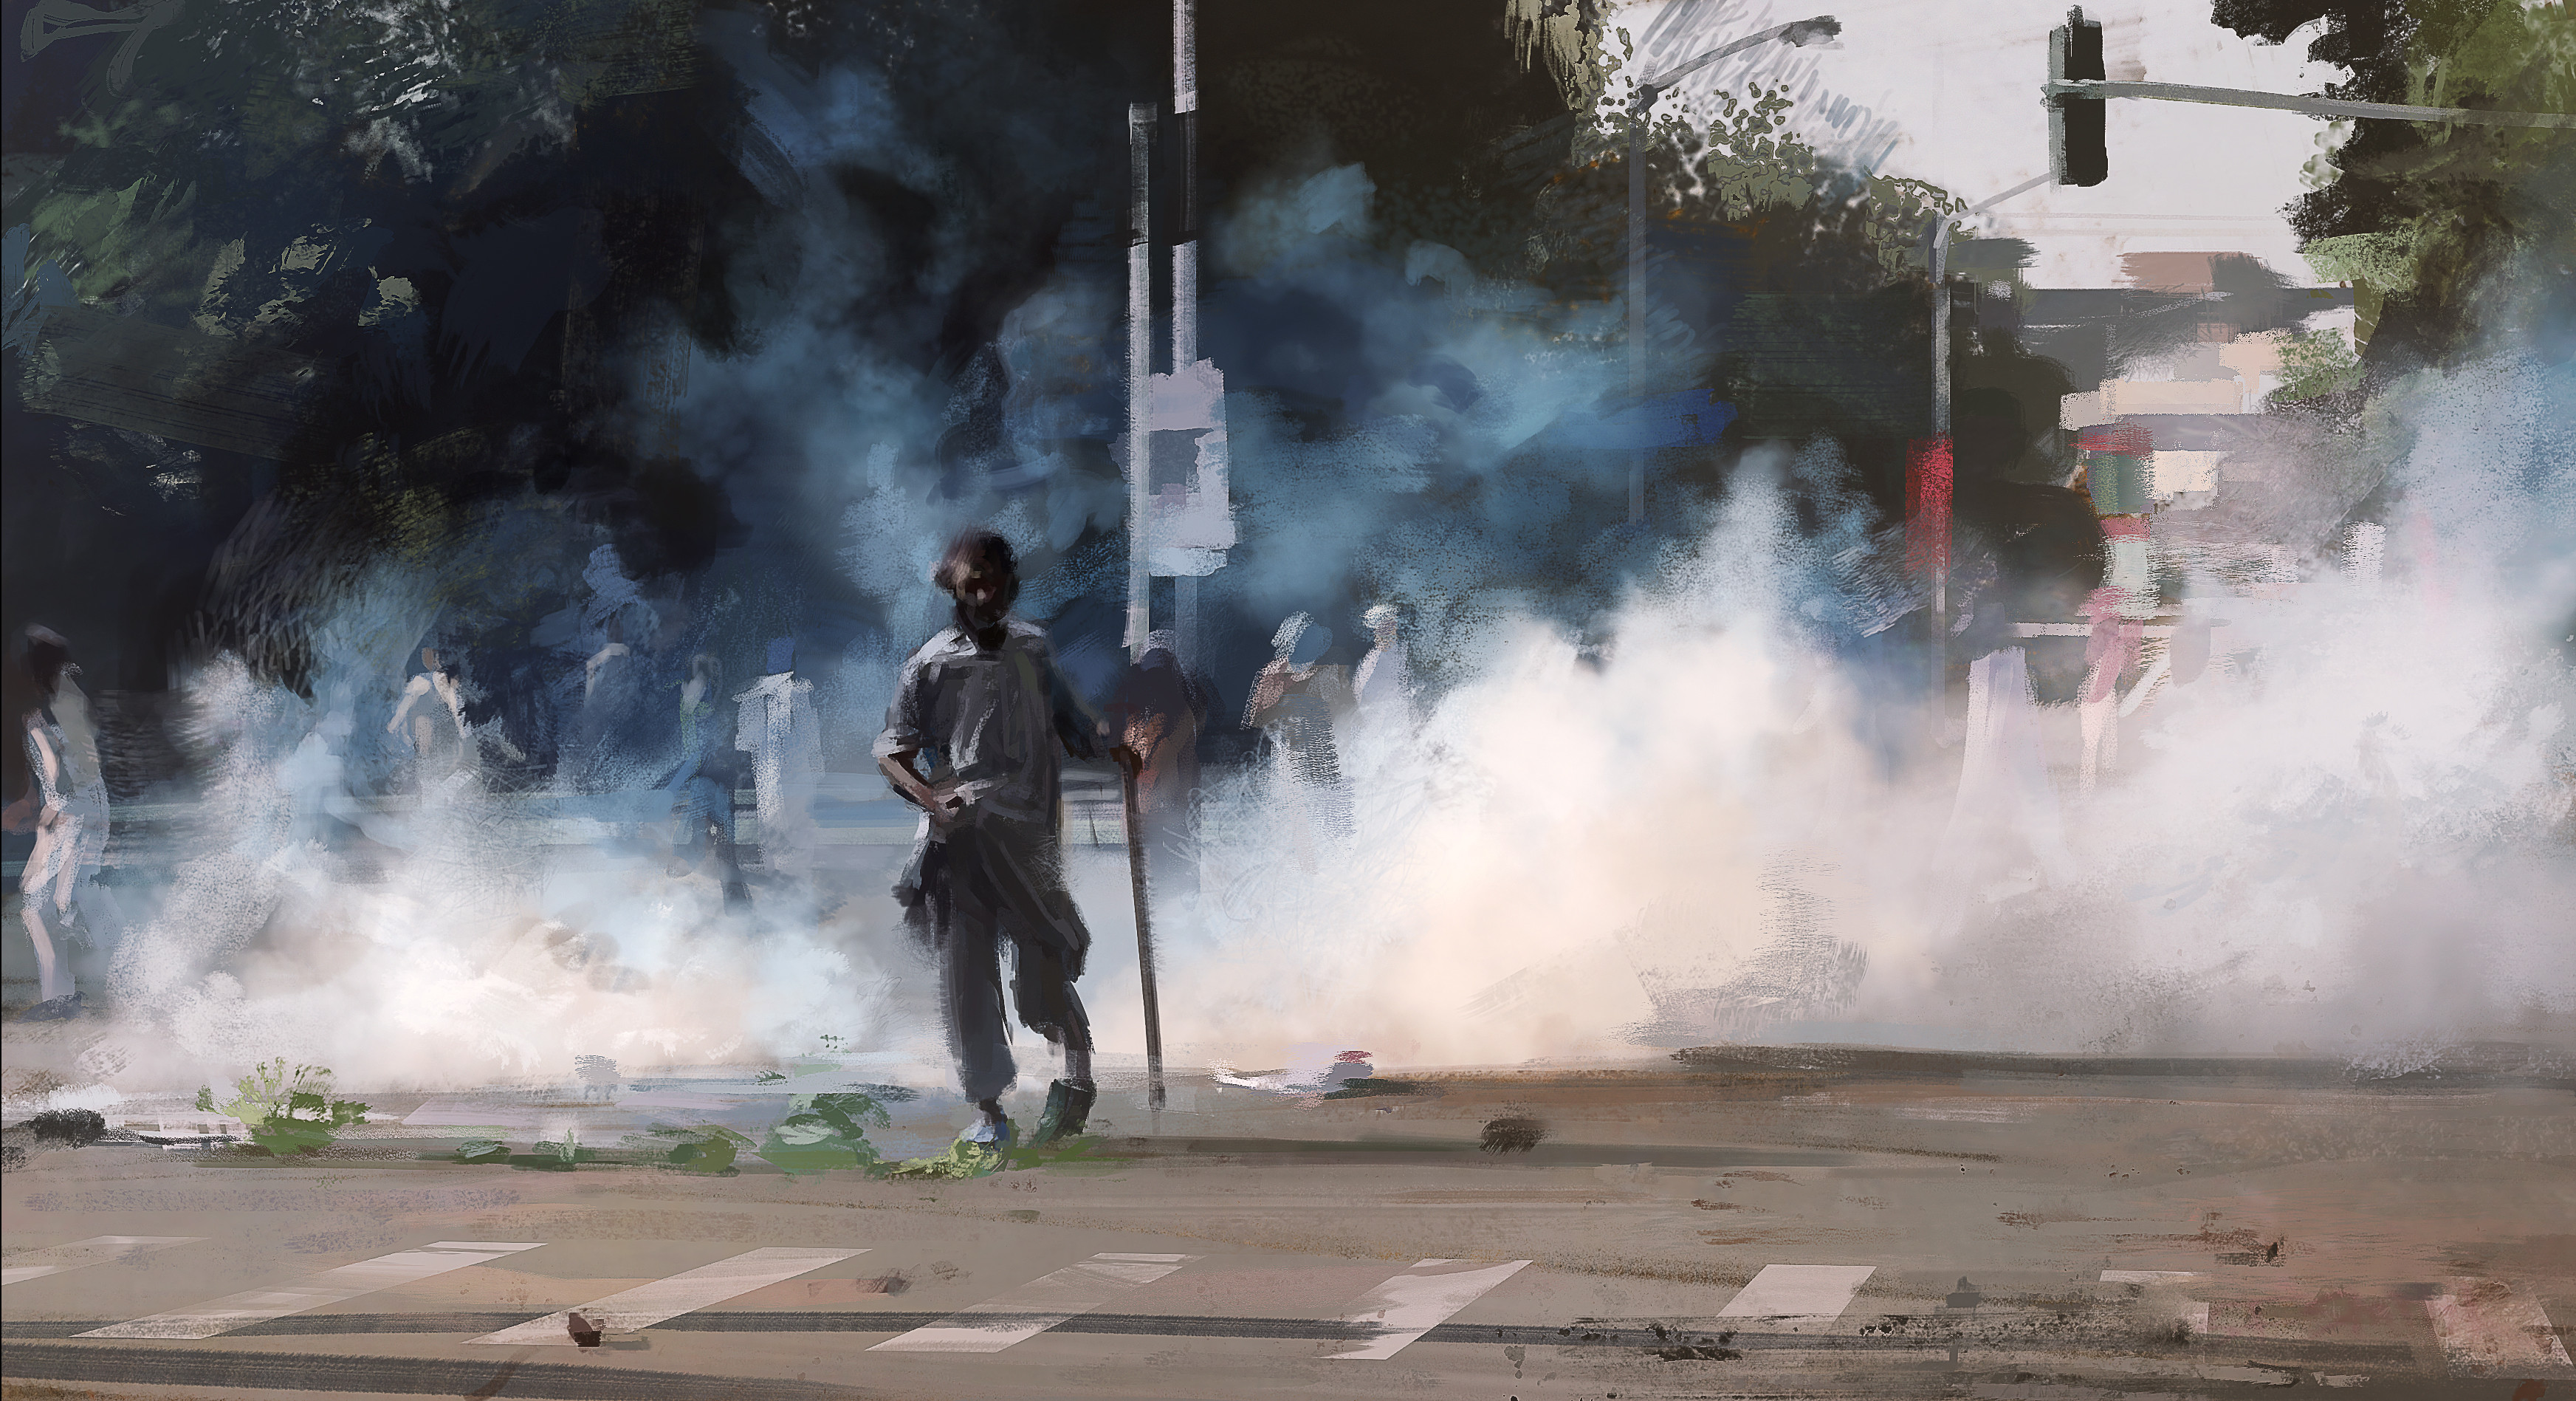 Quick speed paint of teargas in Pakistan.